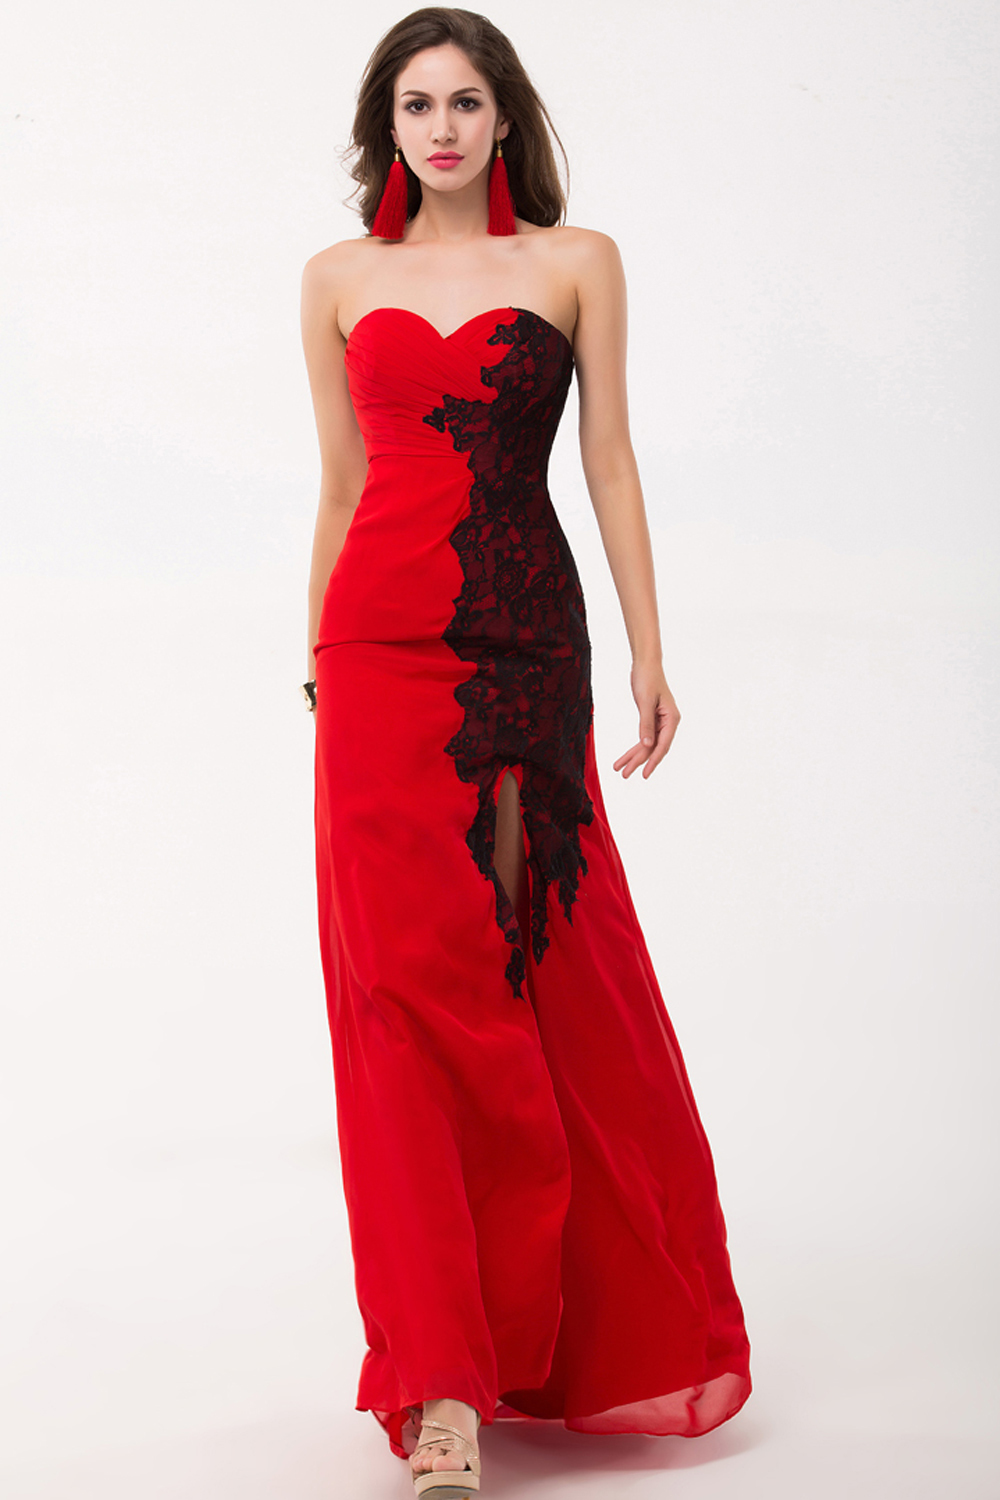 Sheath/Column Strapless Floor-Length Chiffon Evening Dress with Appliques